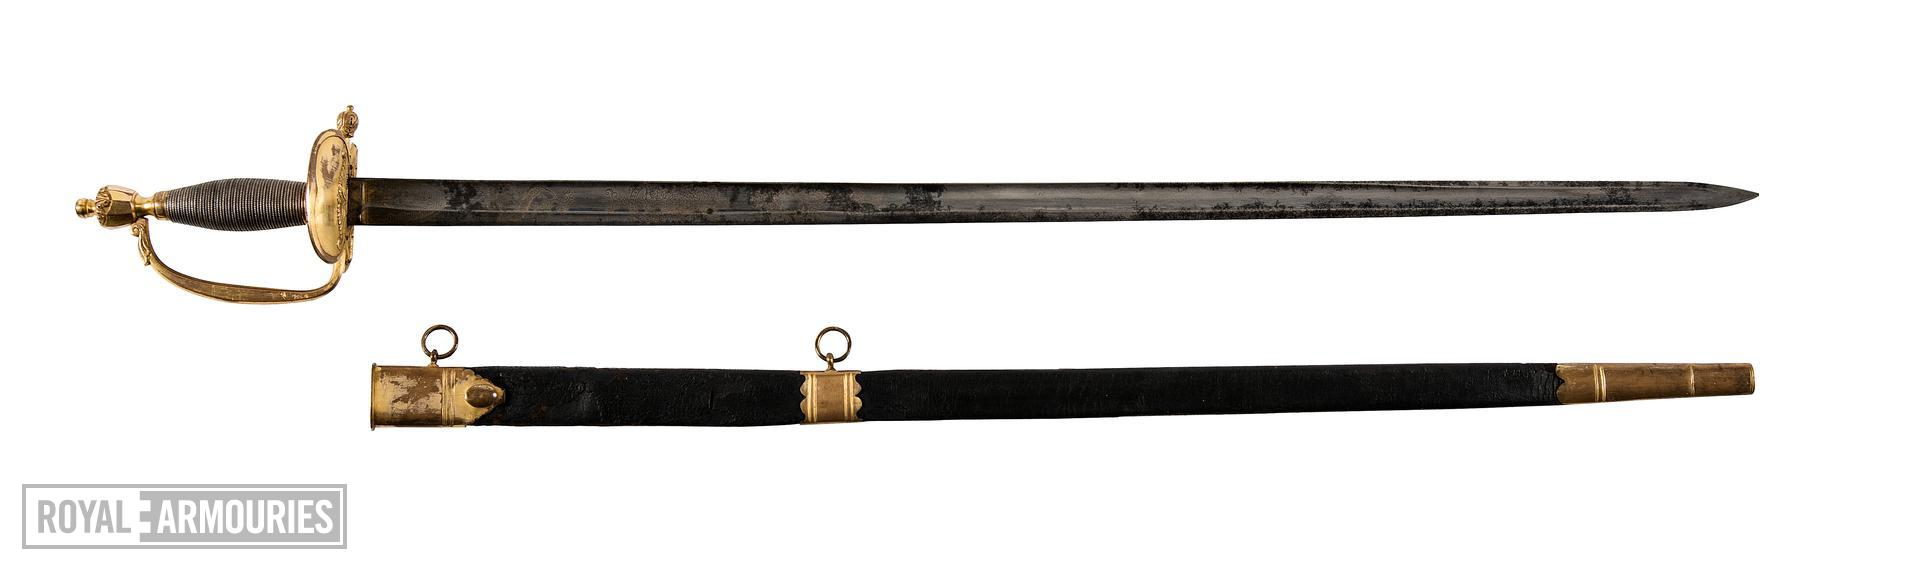 Infantry Officer's  sword and scabbard. Pattern 1796 Britain, 1796-1821 (IX.981)